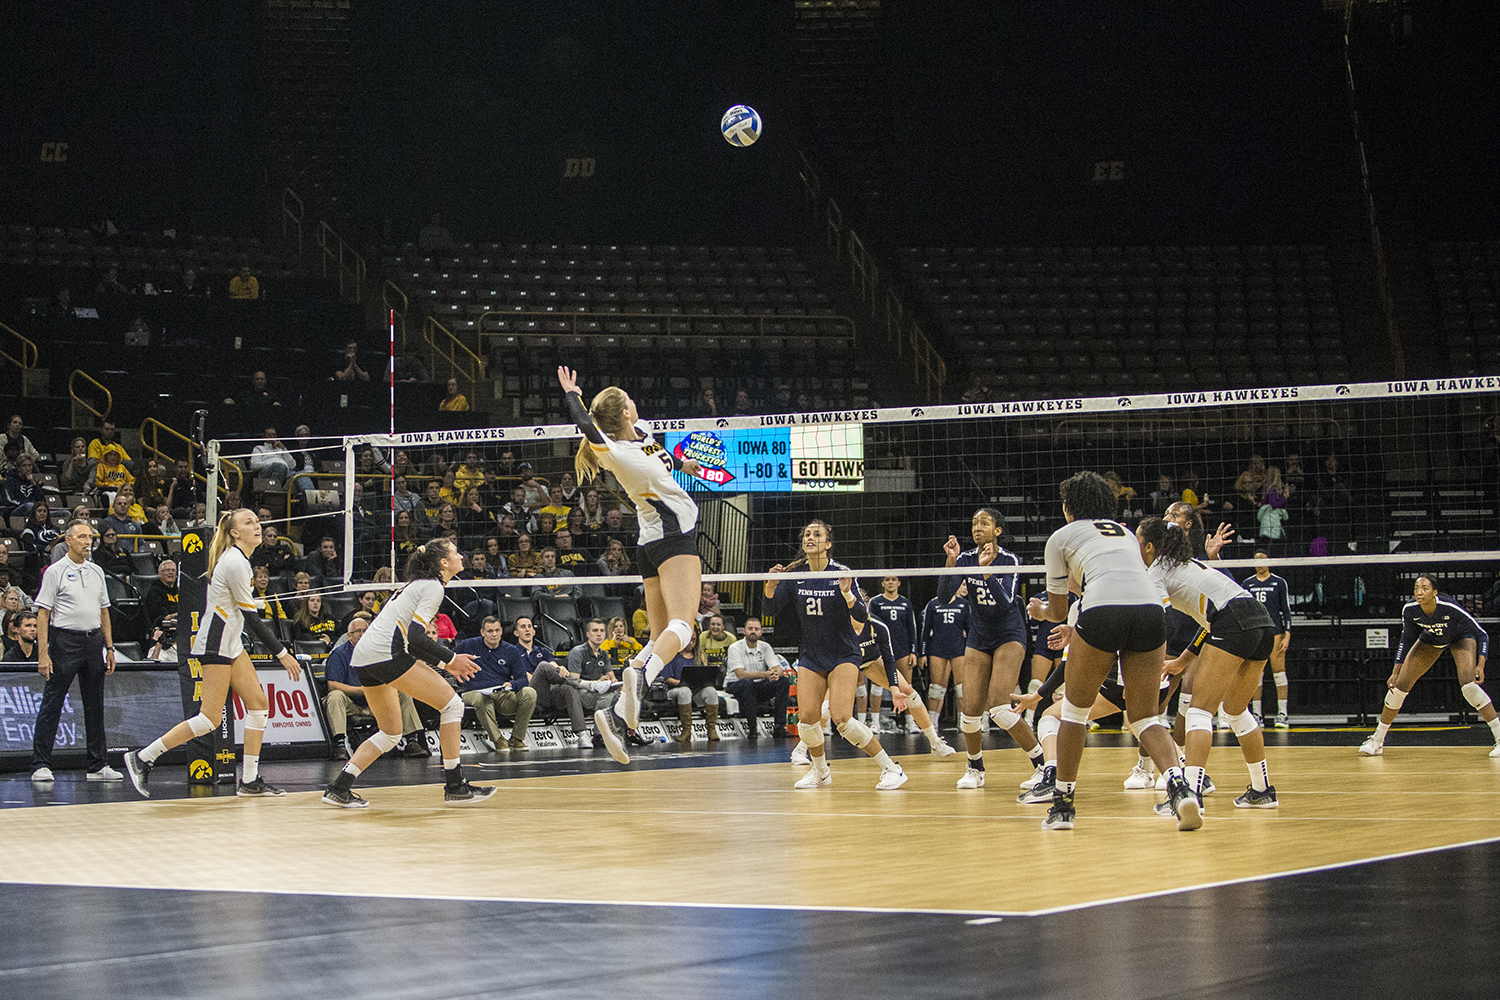 Iowa junior Meghan Buzzerio prepares to spike the ball during a volleyball match between Iowa and Penn State at Carver-Hawkeye Arena on Saturday, November 3, 2018. The Hawkeyes were shut out by the Nittany Lions, 3-0. (Shivansh Ahuja/The Daily Iowan)